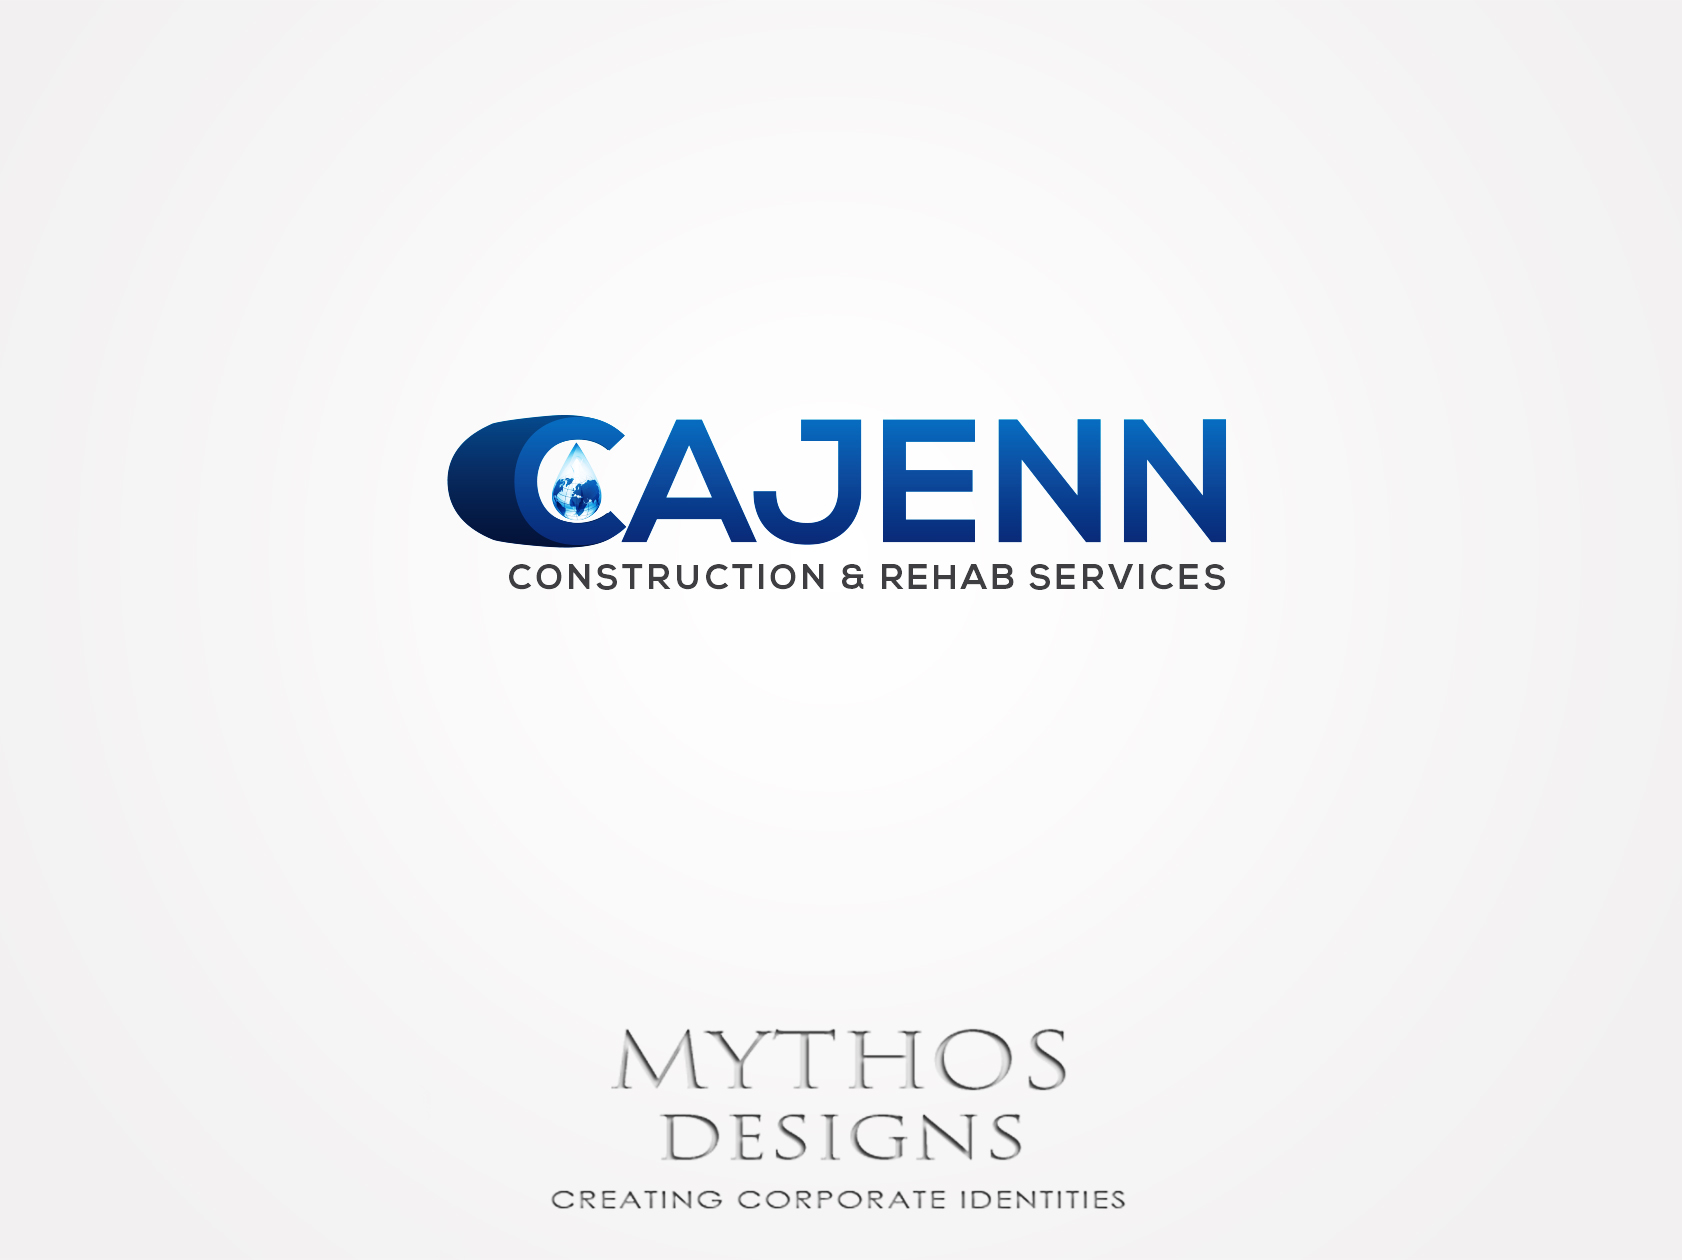 Logo Design by Mythos Designs - Entry No. 309 in the Logo Design Contest New Logo Design for CaJenn Construction & Rehab Services.